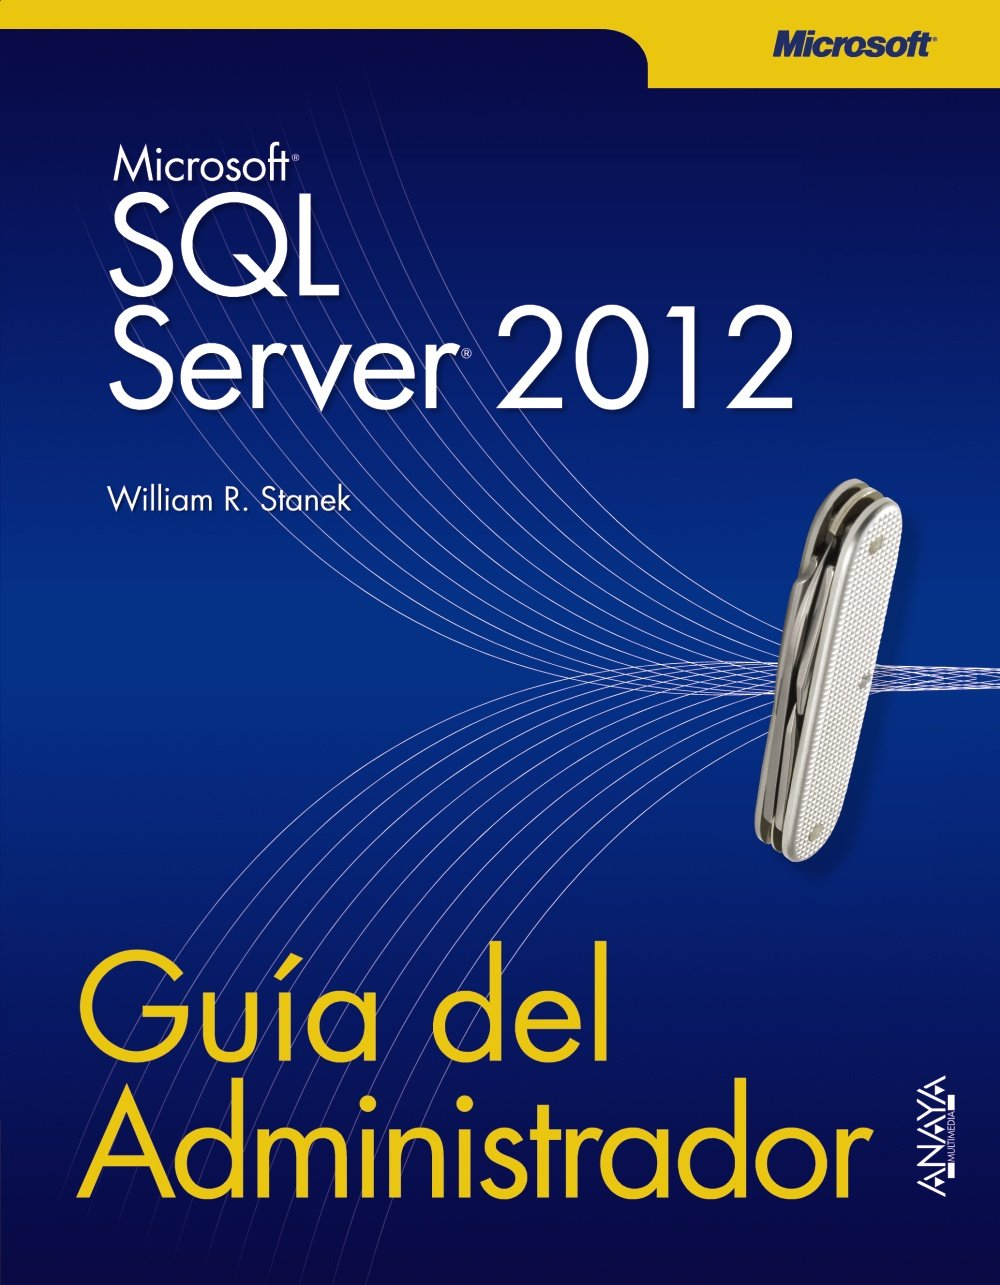 SQL Server 2012. Guía del Administrador (Manuales Técnicos) Tapa blanda – 9 oct 2012 William R. Stanek ANAYA MULTIMEDIA 8441532214 SAP (Systems